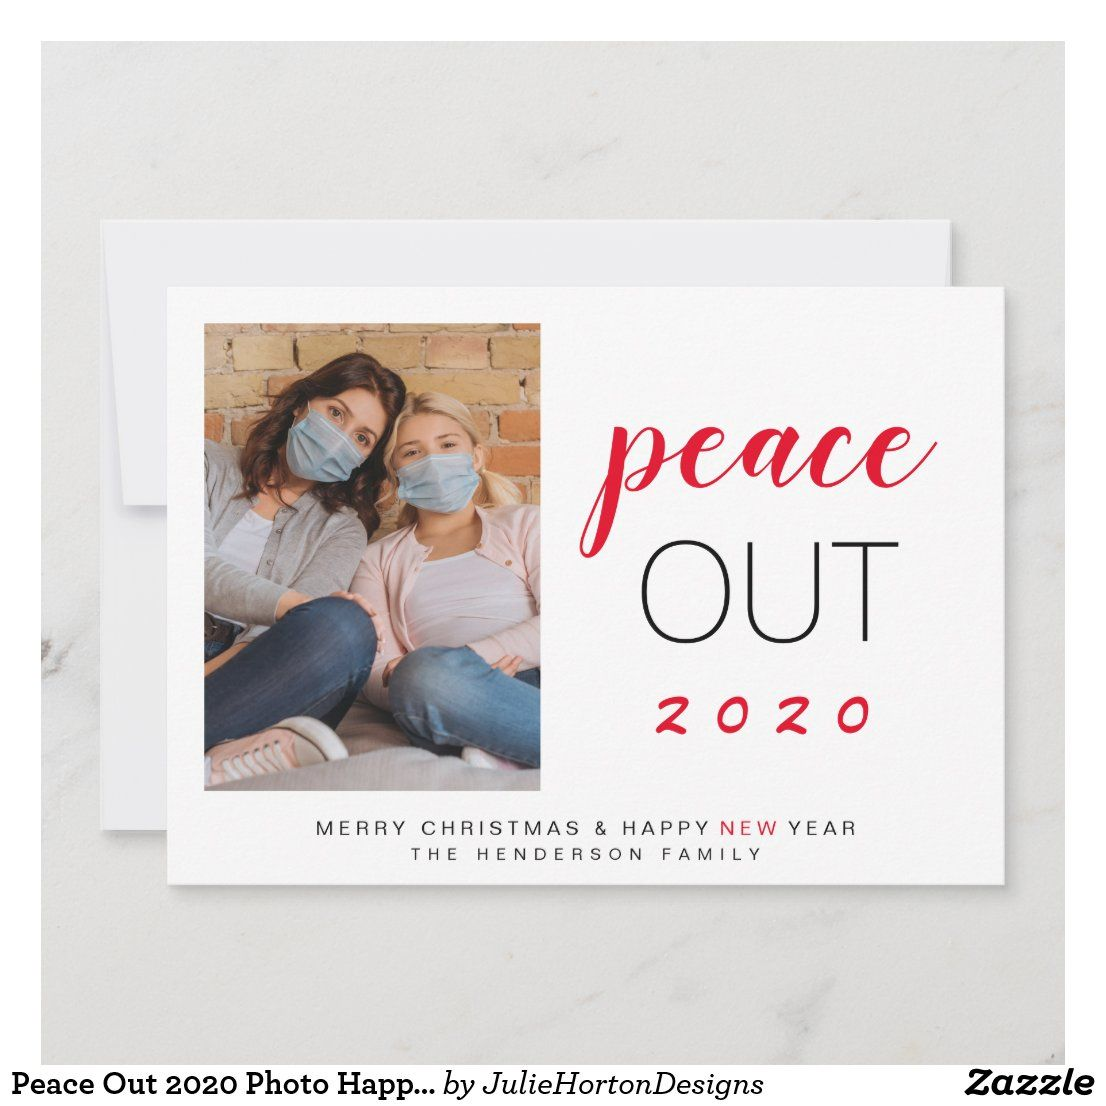 Peace Out 2020 Photo Happy New Year Christmas Holiday Card Zazzle Com In 2021 Family Holiday Cards Christmas Holiday Cards Family Christmas Card Photos